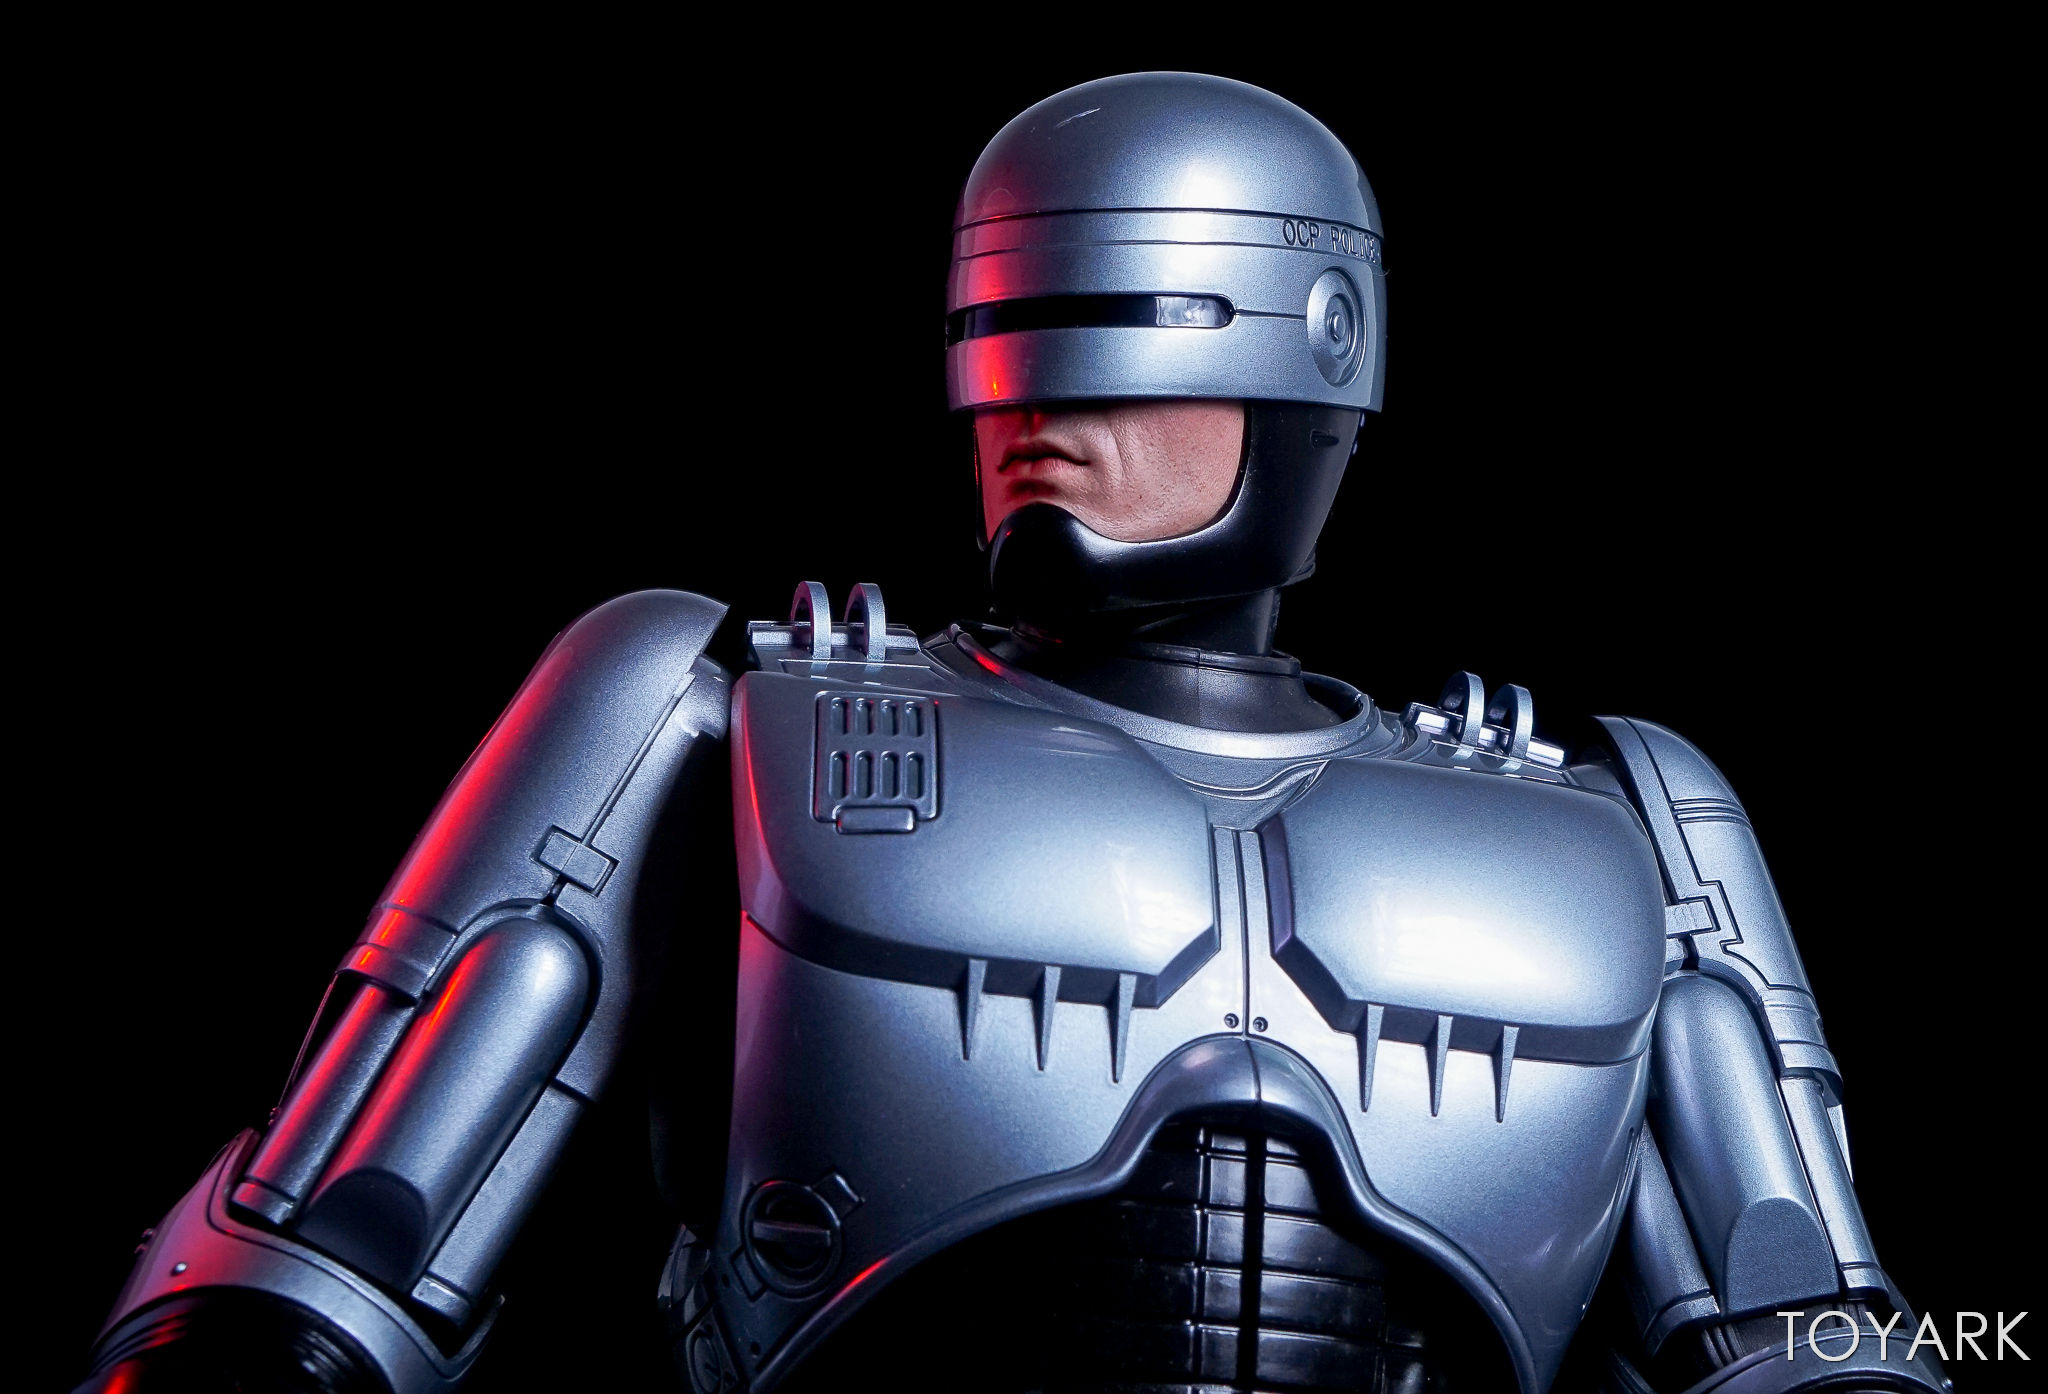 http://news.toyark.com/wp-content/uploads/sites/4/2017/07/Enterbay-Robocop-3-HD-Masterpiece-008.jpg